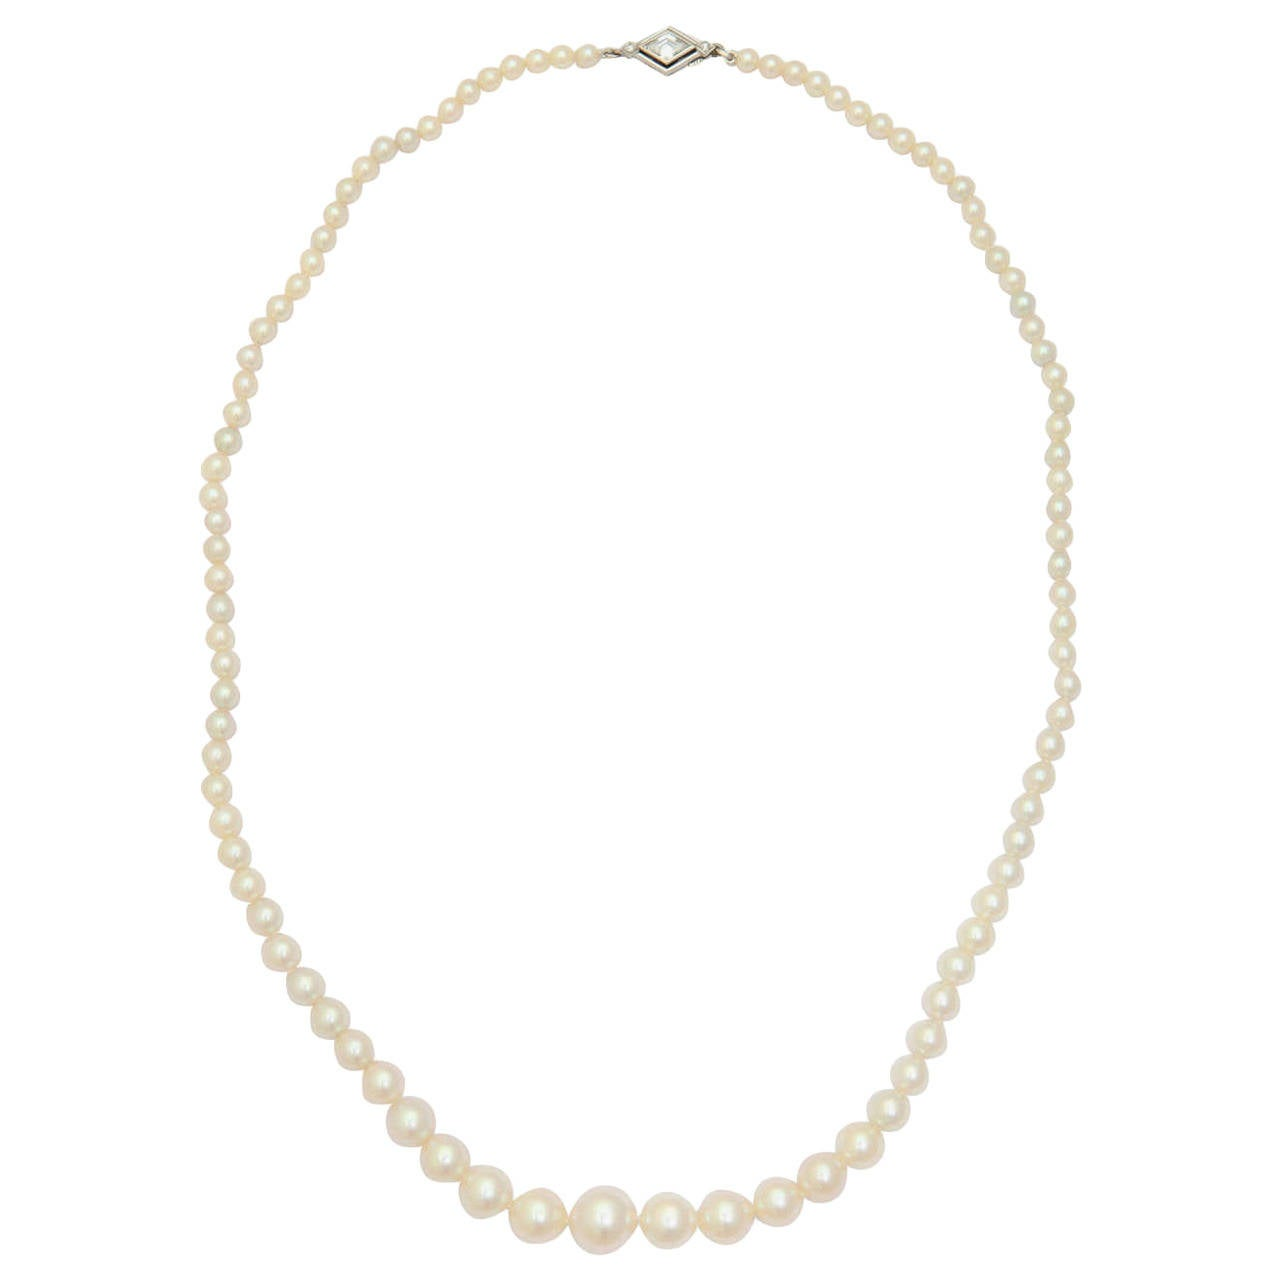 Graduated Cultured Pearl Necklace with Diamond Gold Clasp